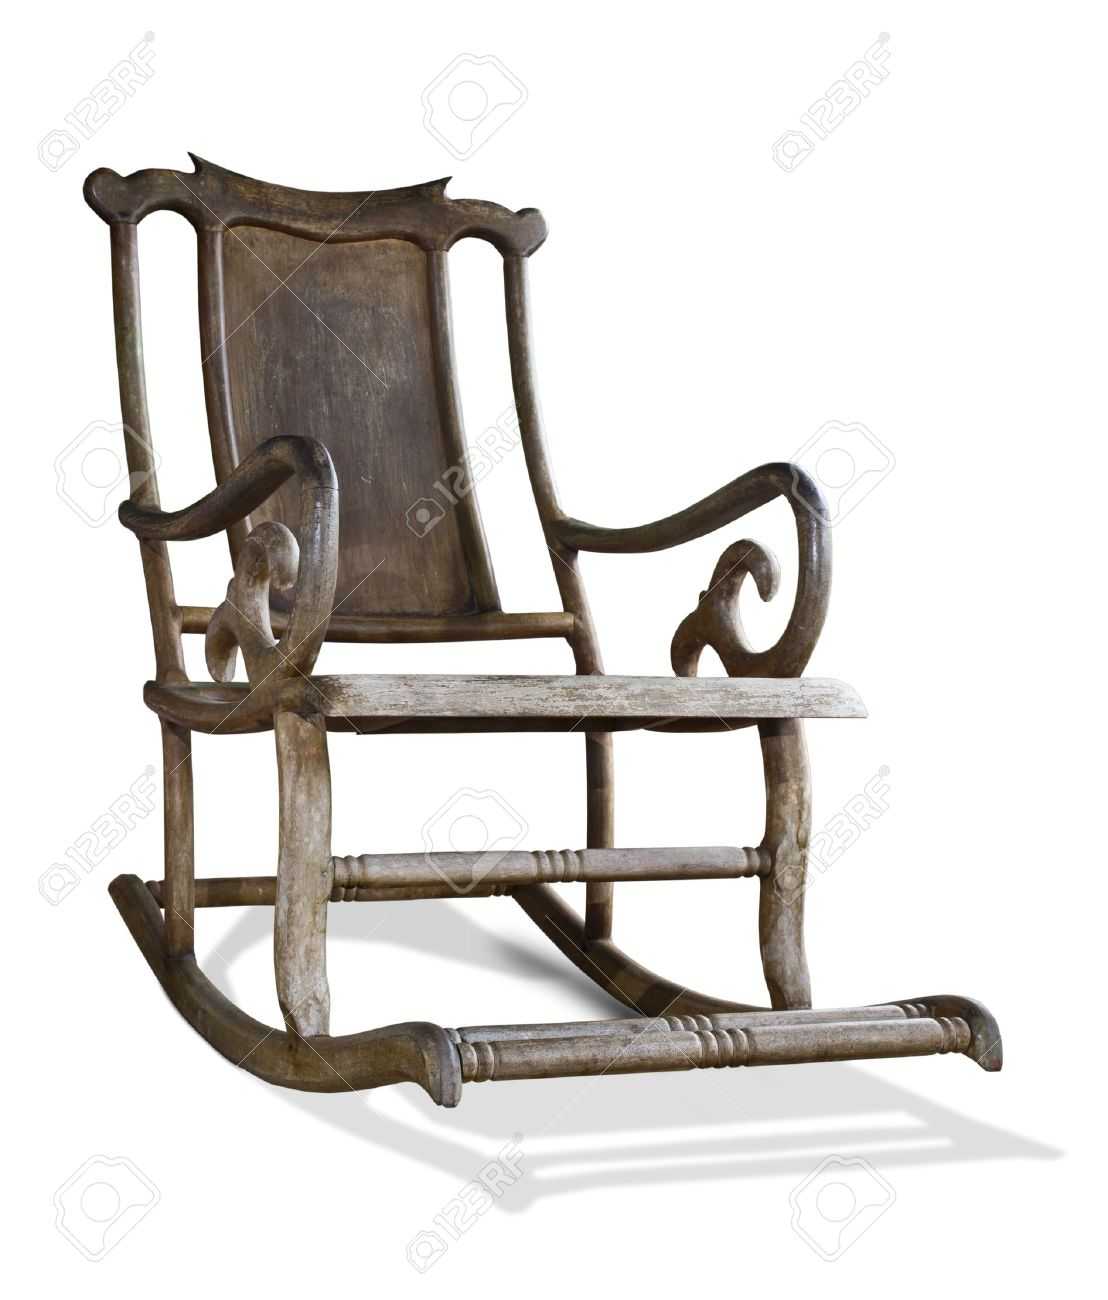 old wooden rocking chair isolated on white background stock photo